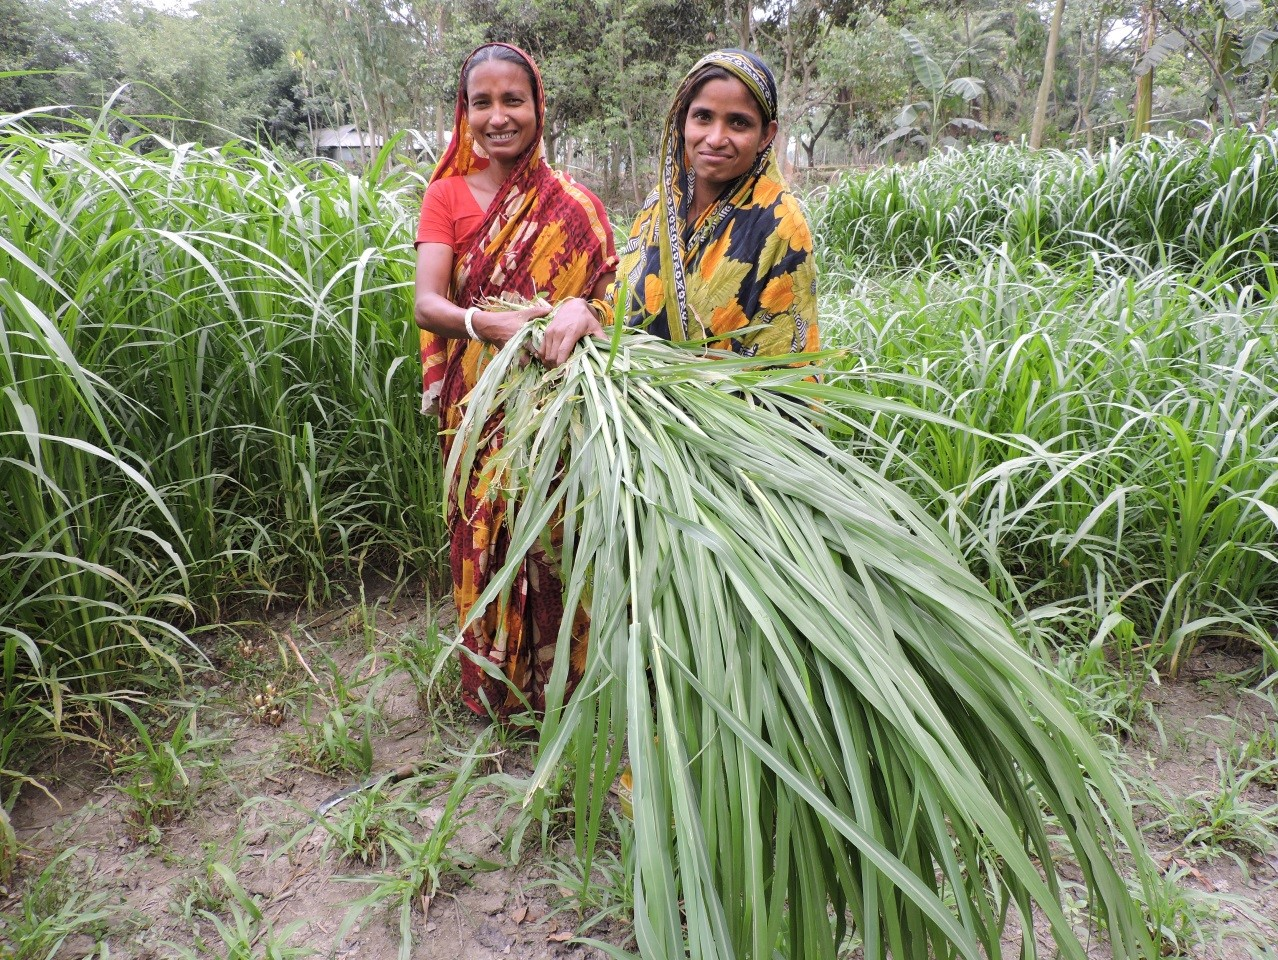 Laheri (left) and another producer group member cutting napier grass for cattle fodder